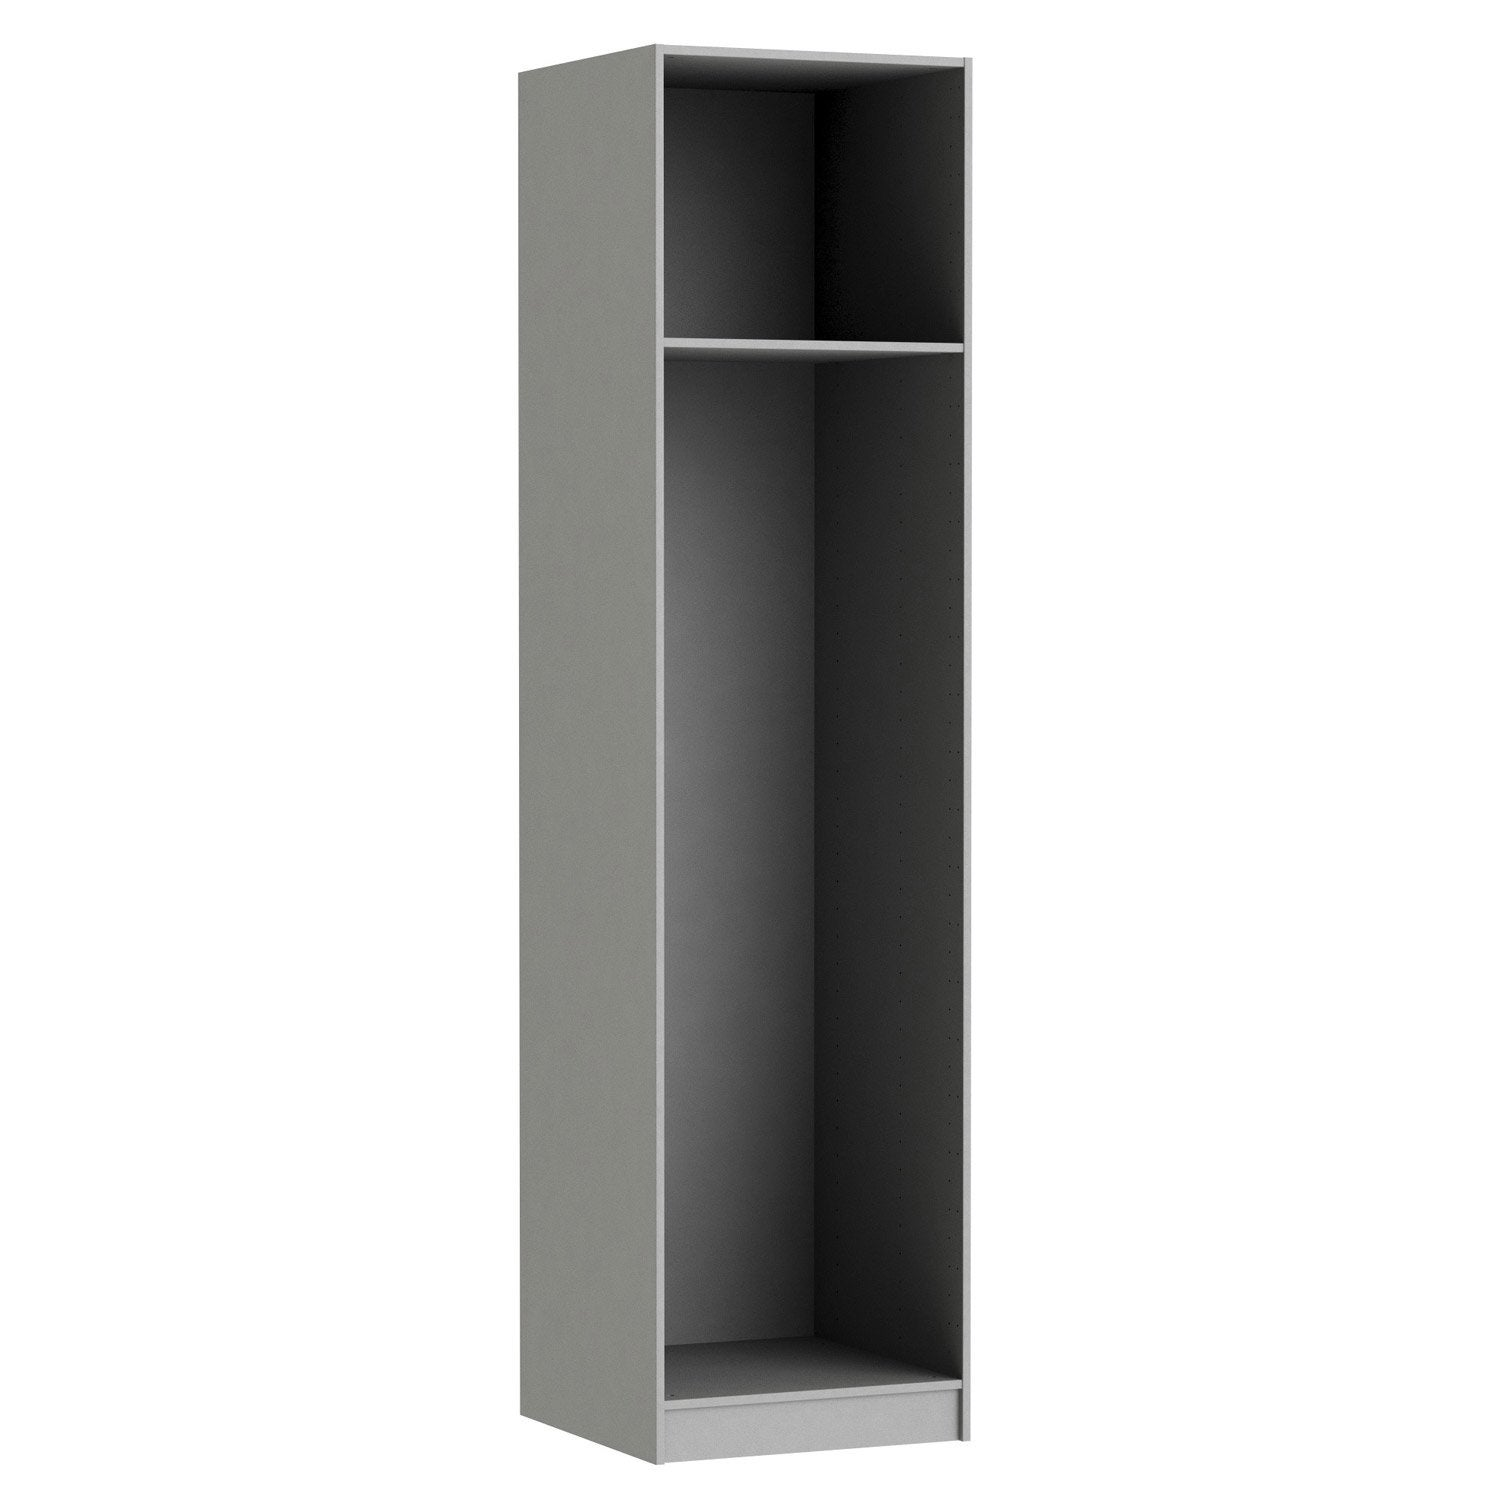 caisson spaceo home 240 x 60 x 60 cm anthracite leroy merlin. Black Bedroom Furniture Sets. Home Design Ideas